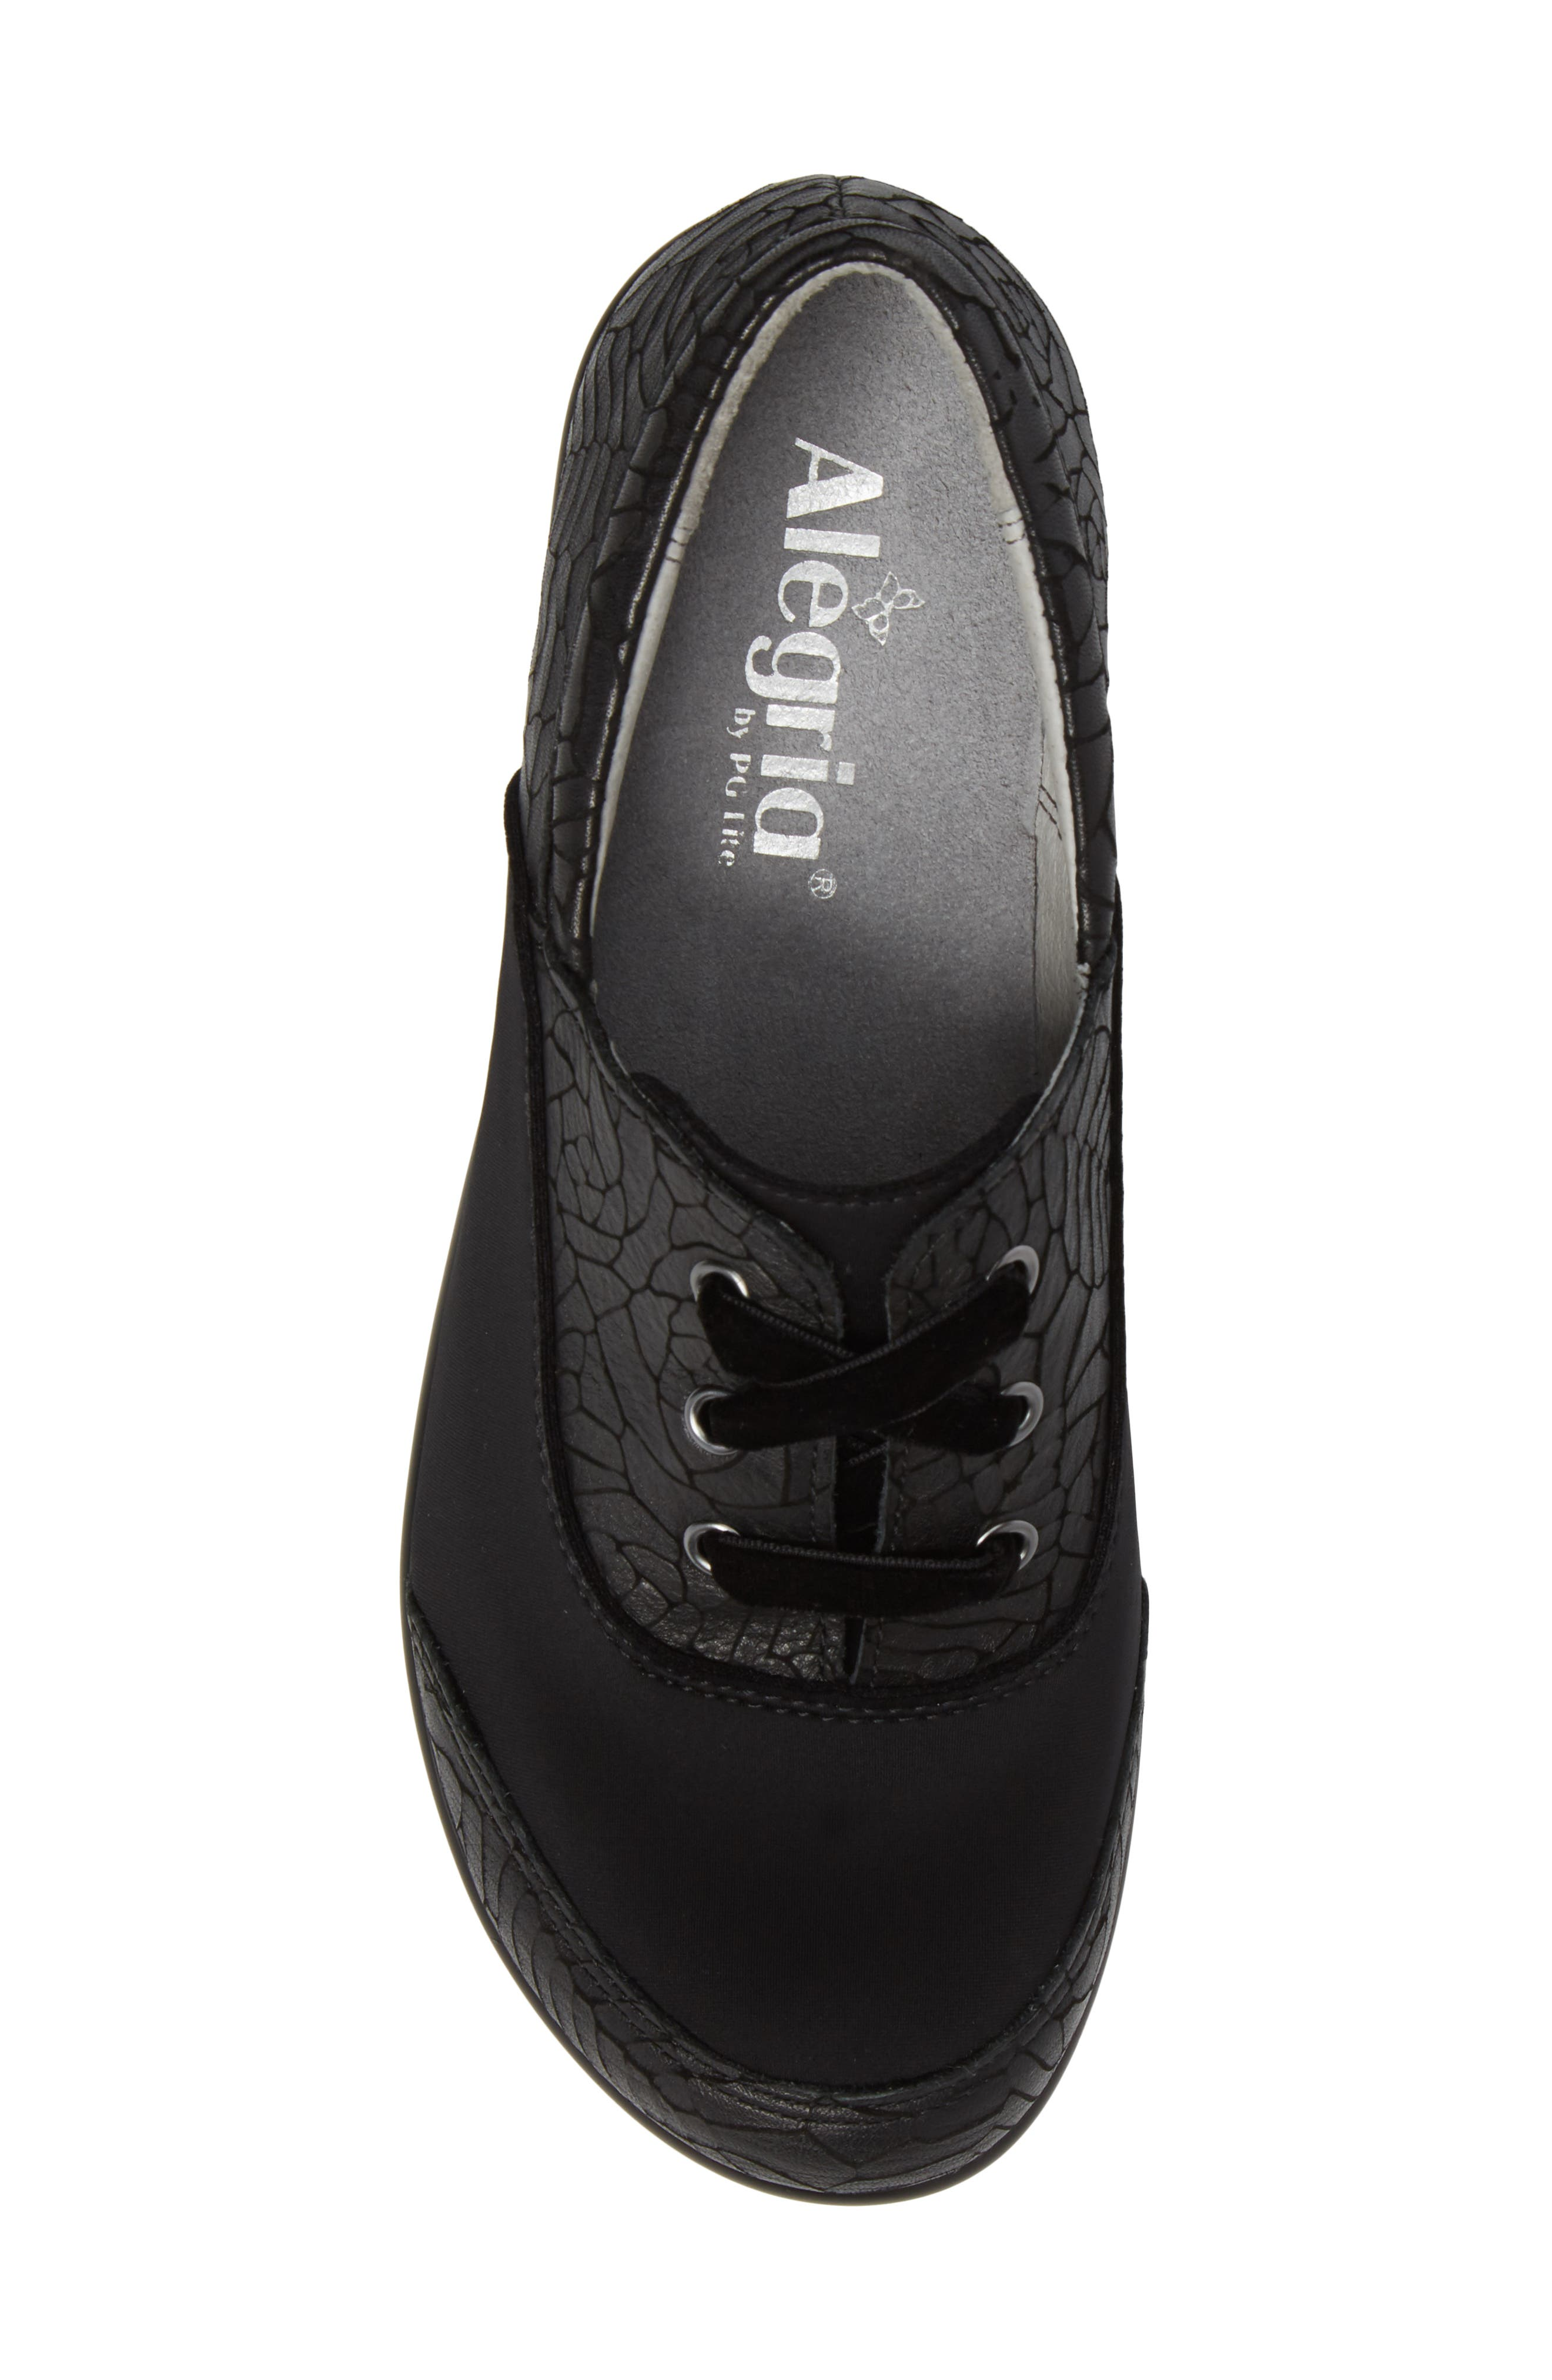 Madi Lace-Up Shoe,                             Alternate thumbnail 5, color,                             Floral Notes Leather